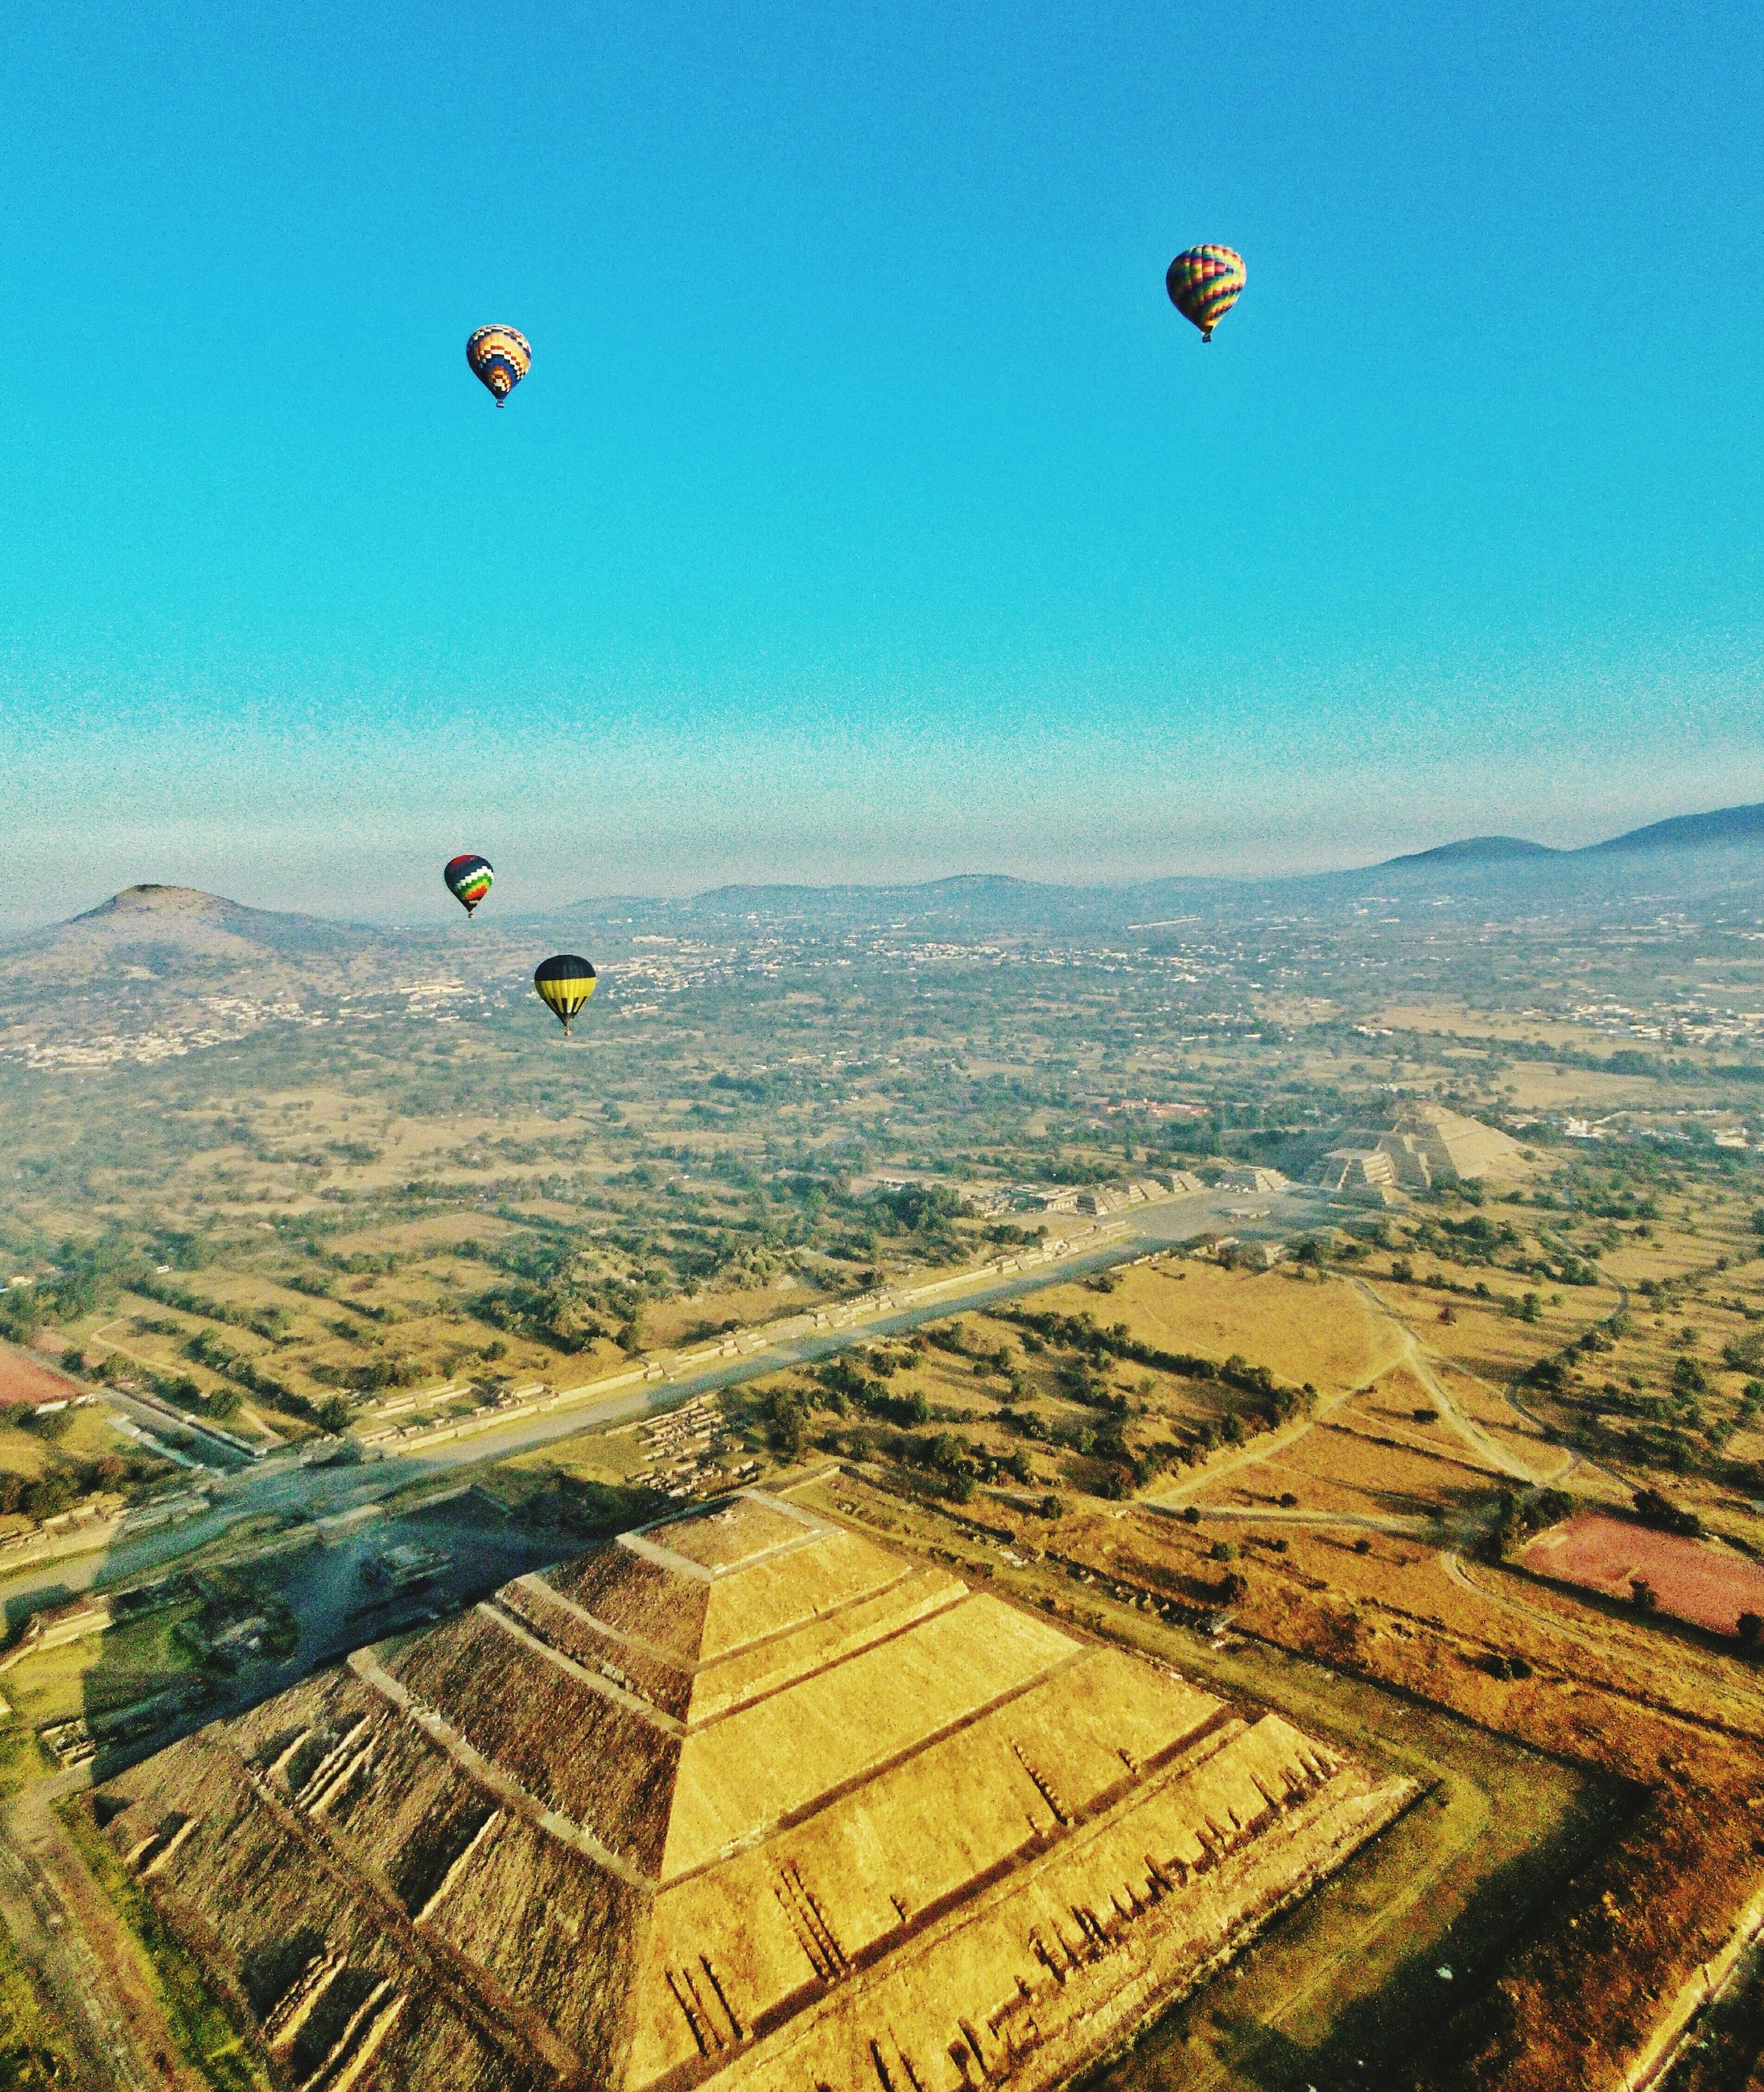 aerial view, hot air balloon, mid-air, flying, outdoors, sky, landscape, no people, full frame, nature, scenics, day, agriculture, backgrounds, drone, parachute